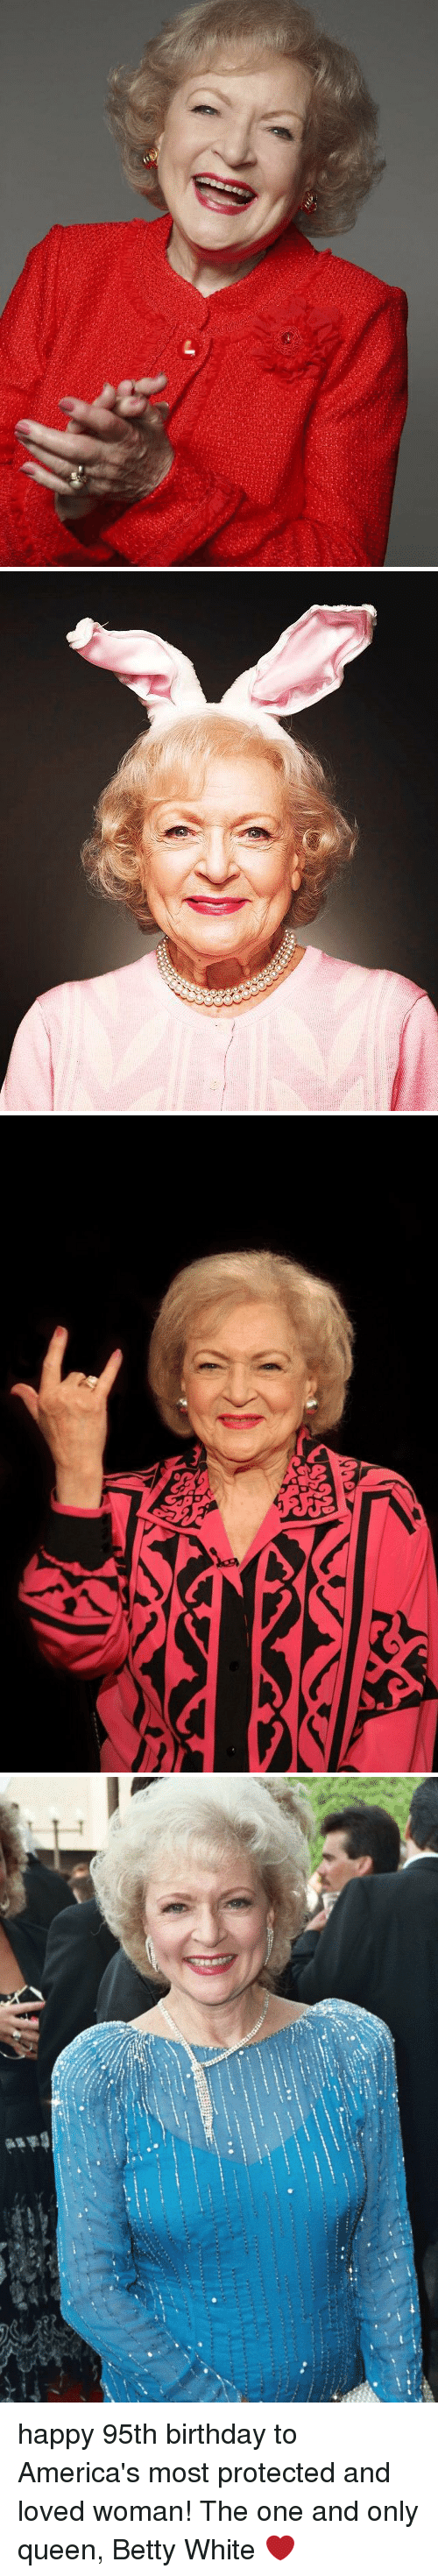 Betty White, Relatable, and  the One and Only: happy 95th birthday to America's most protected and loved woman! The one and only queen, Betty White ❤️